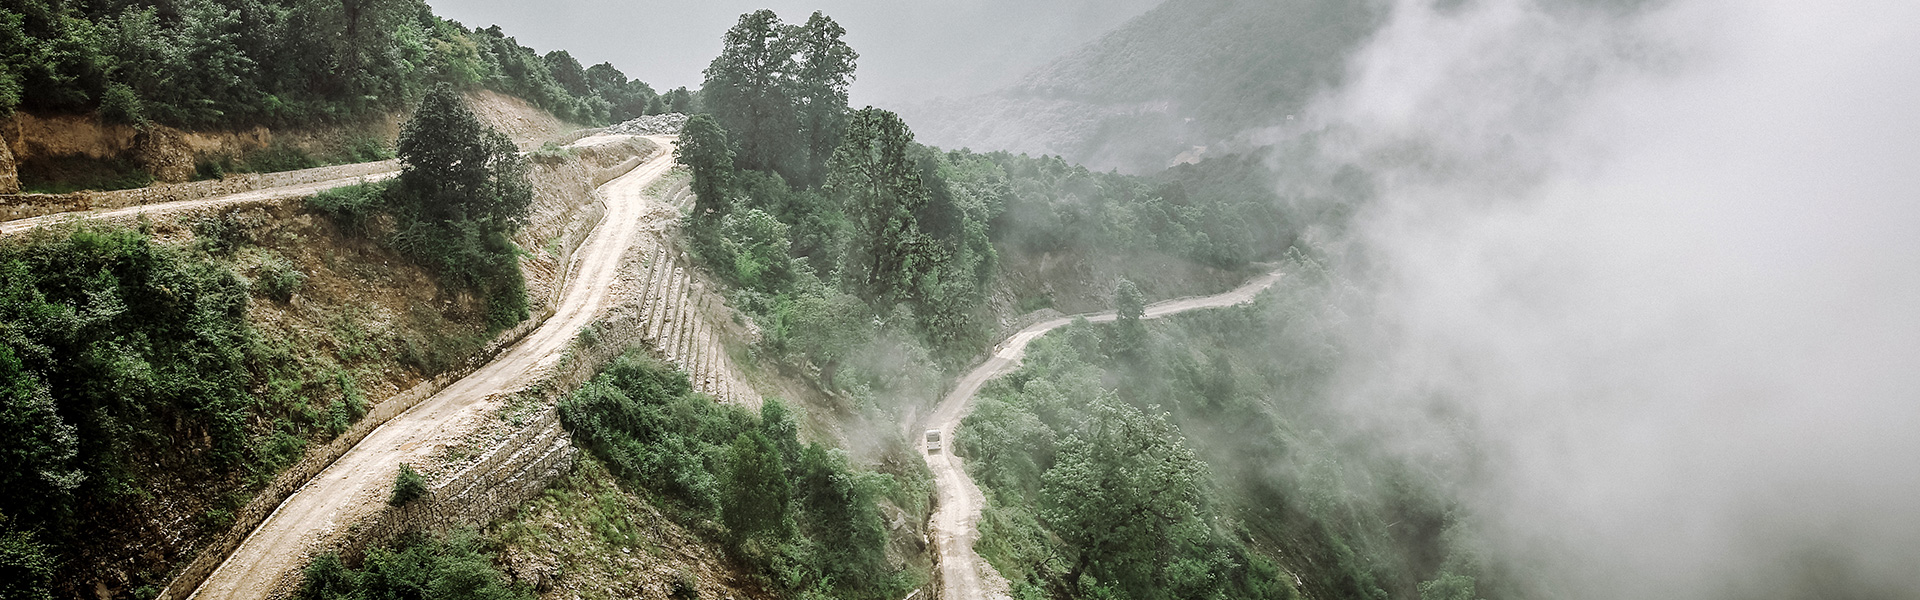 nepal-landscape-steep-hills-roads